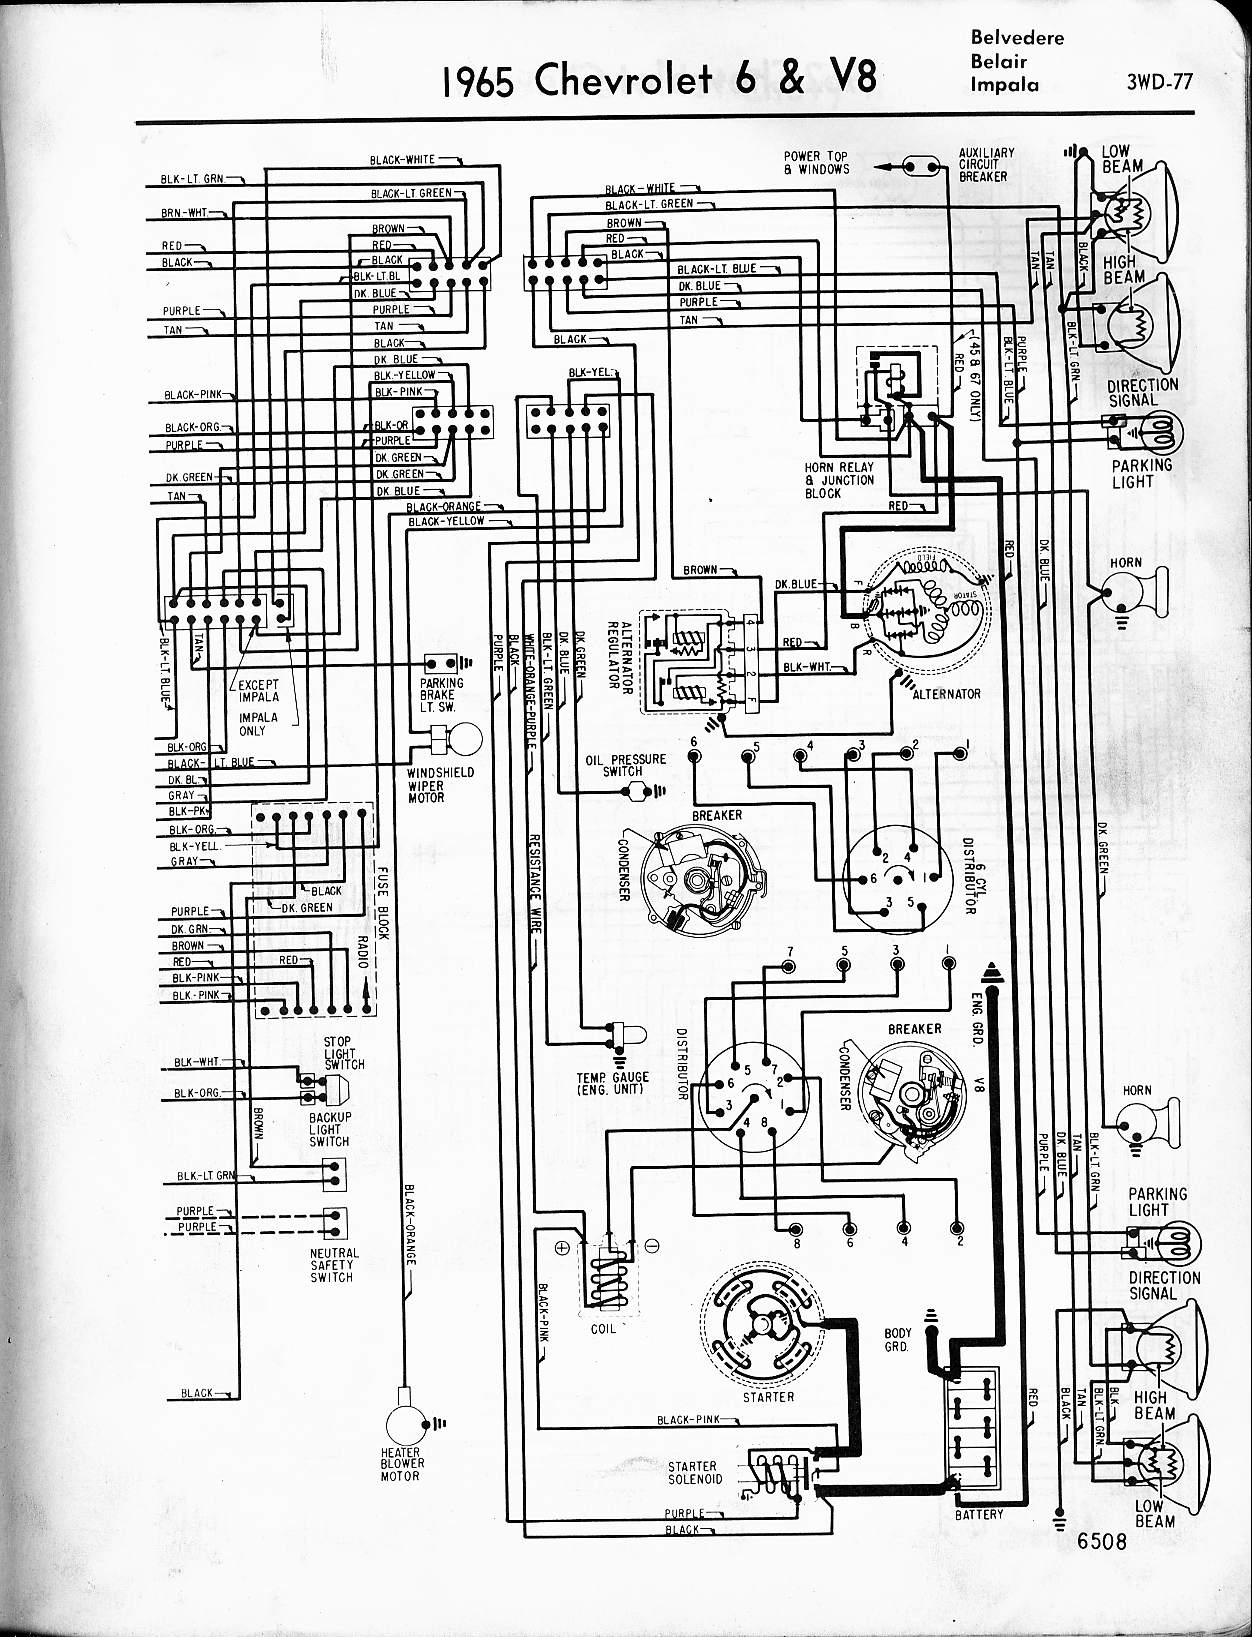 MWireChev65_3WD 077 chevy diagrams 1970 chevelle dash wiring diagram at panicattacktreatment.co